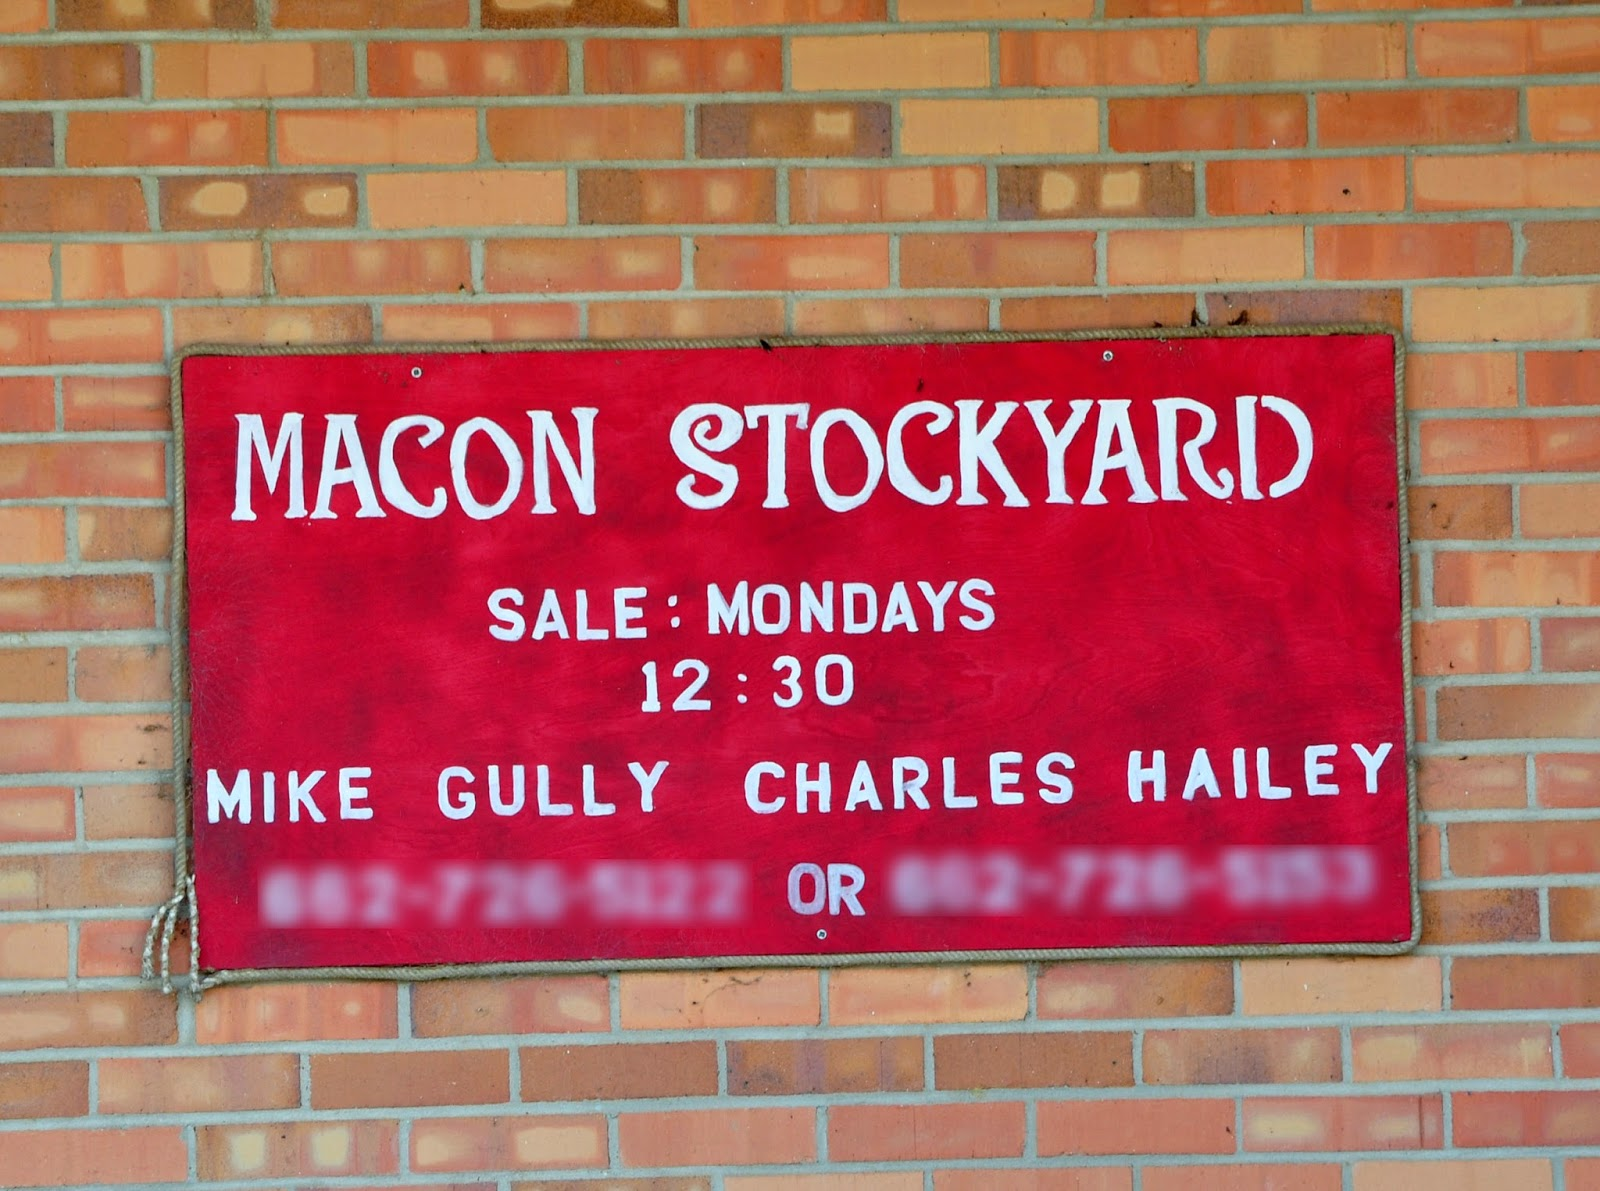 Macon Stockyard Hickory Ridge Studio